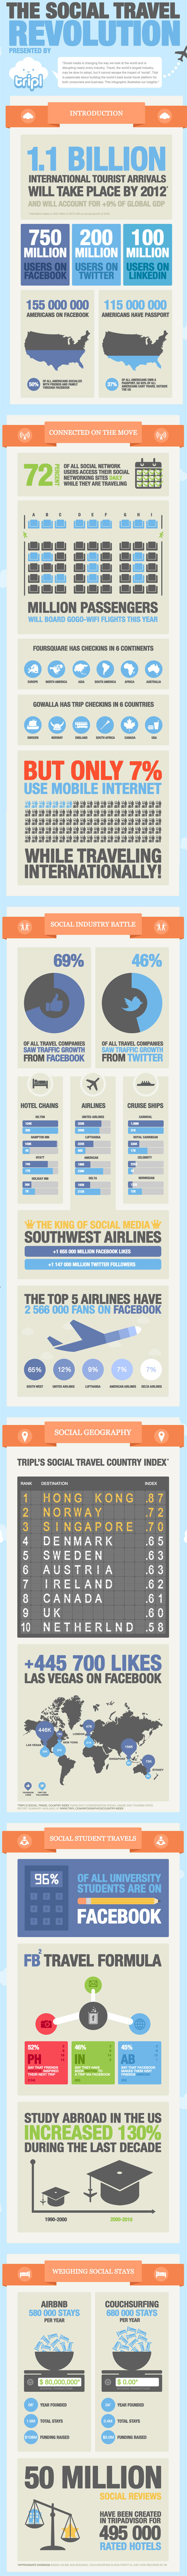 Infographic-The-Social-Travel-Revolution-Large